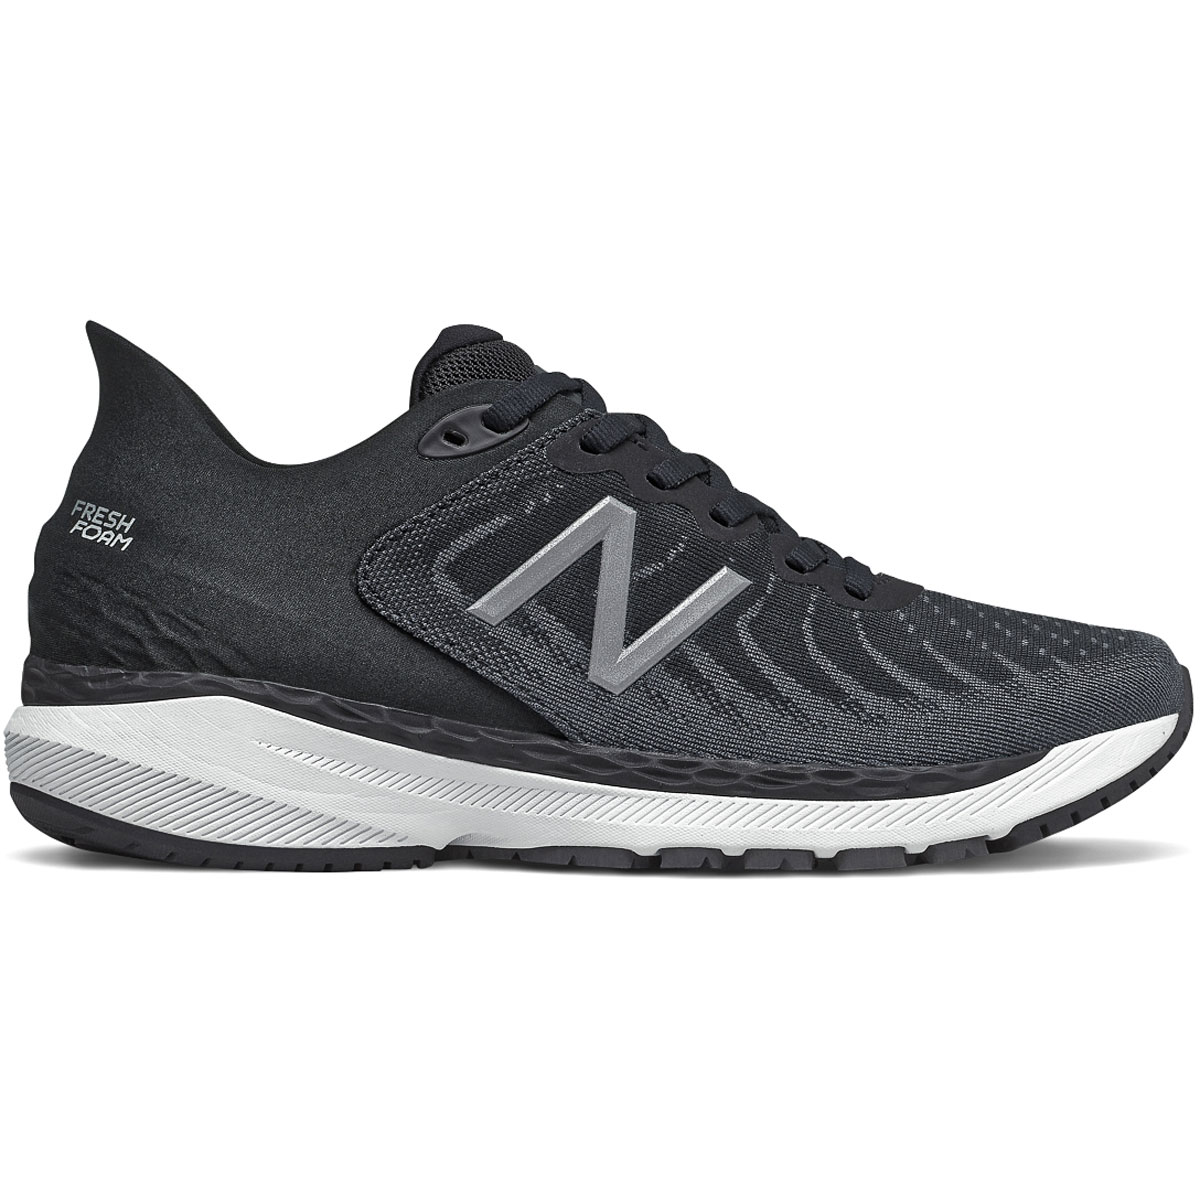 Women's New Balance 860V11 Running Shoe - Color: Black/White/Phantom - Size: 6.5 - Width: Regular, Black/White/Phantom, large, image 1